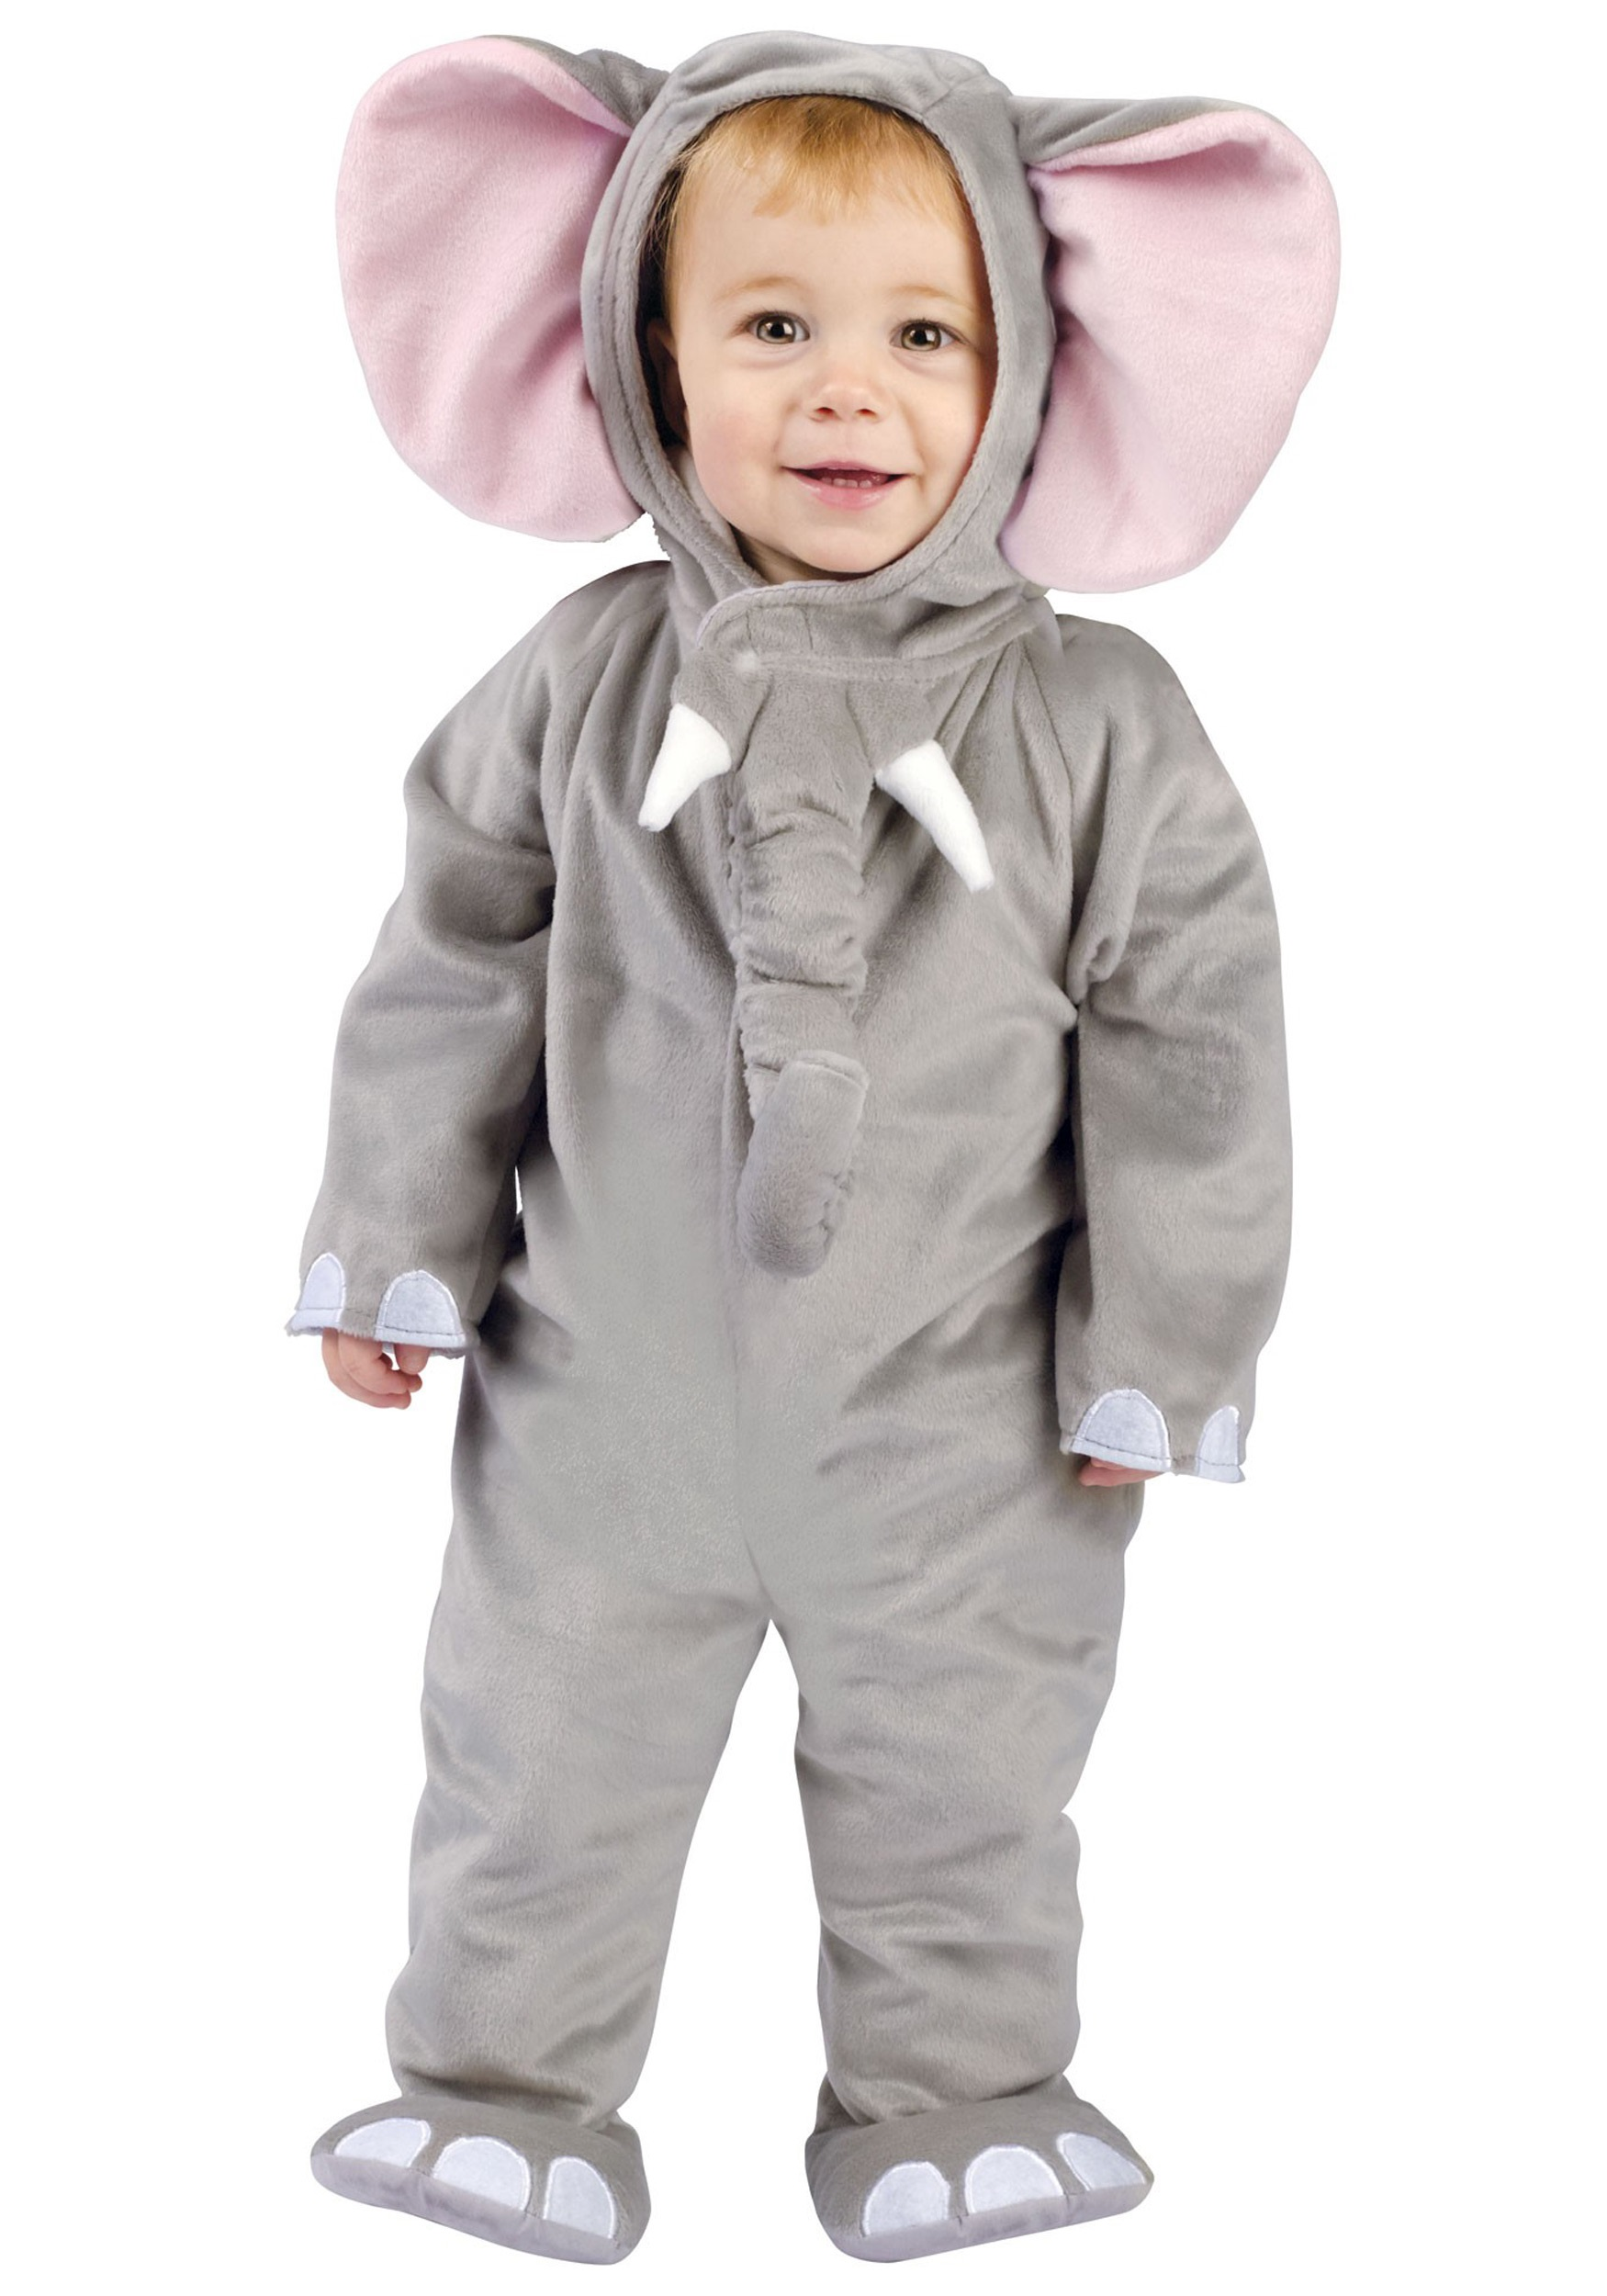 Elephant Baby Costume  sc 1 st  Halloween Costume & Elephant Baby Costume - Infant Animal Halloween Costumes